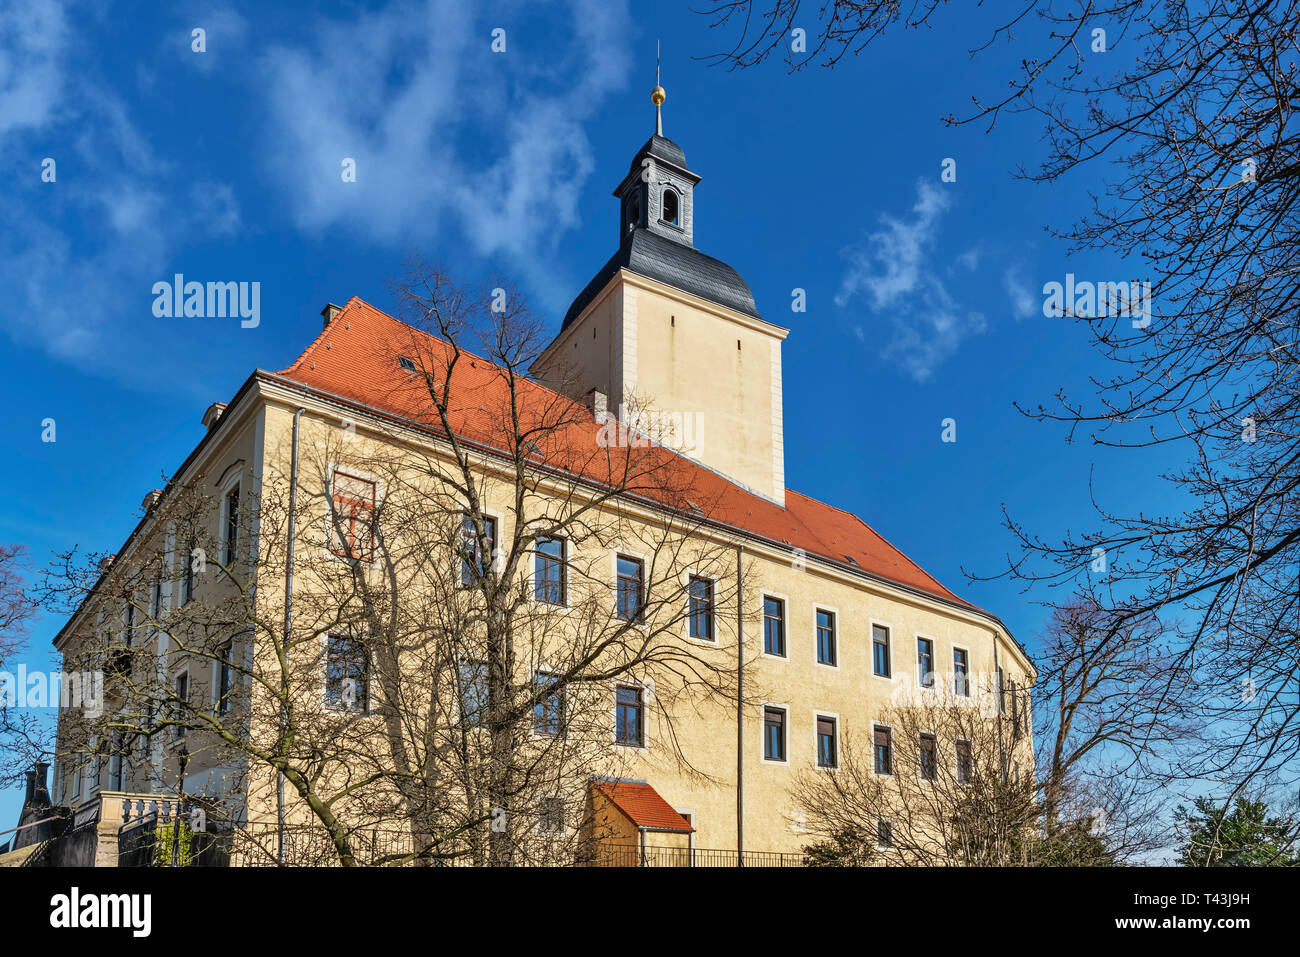 The Castle Hirschstein is a castle in the municipality Hirschstein, administrative district Meissen, Saxony, Germany, Europe - Stock Image